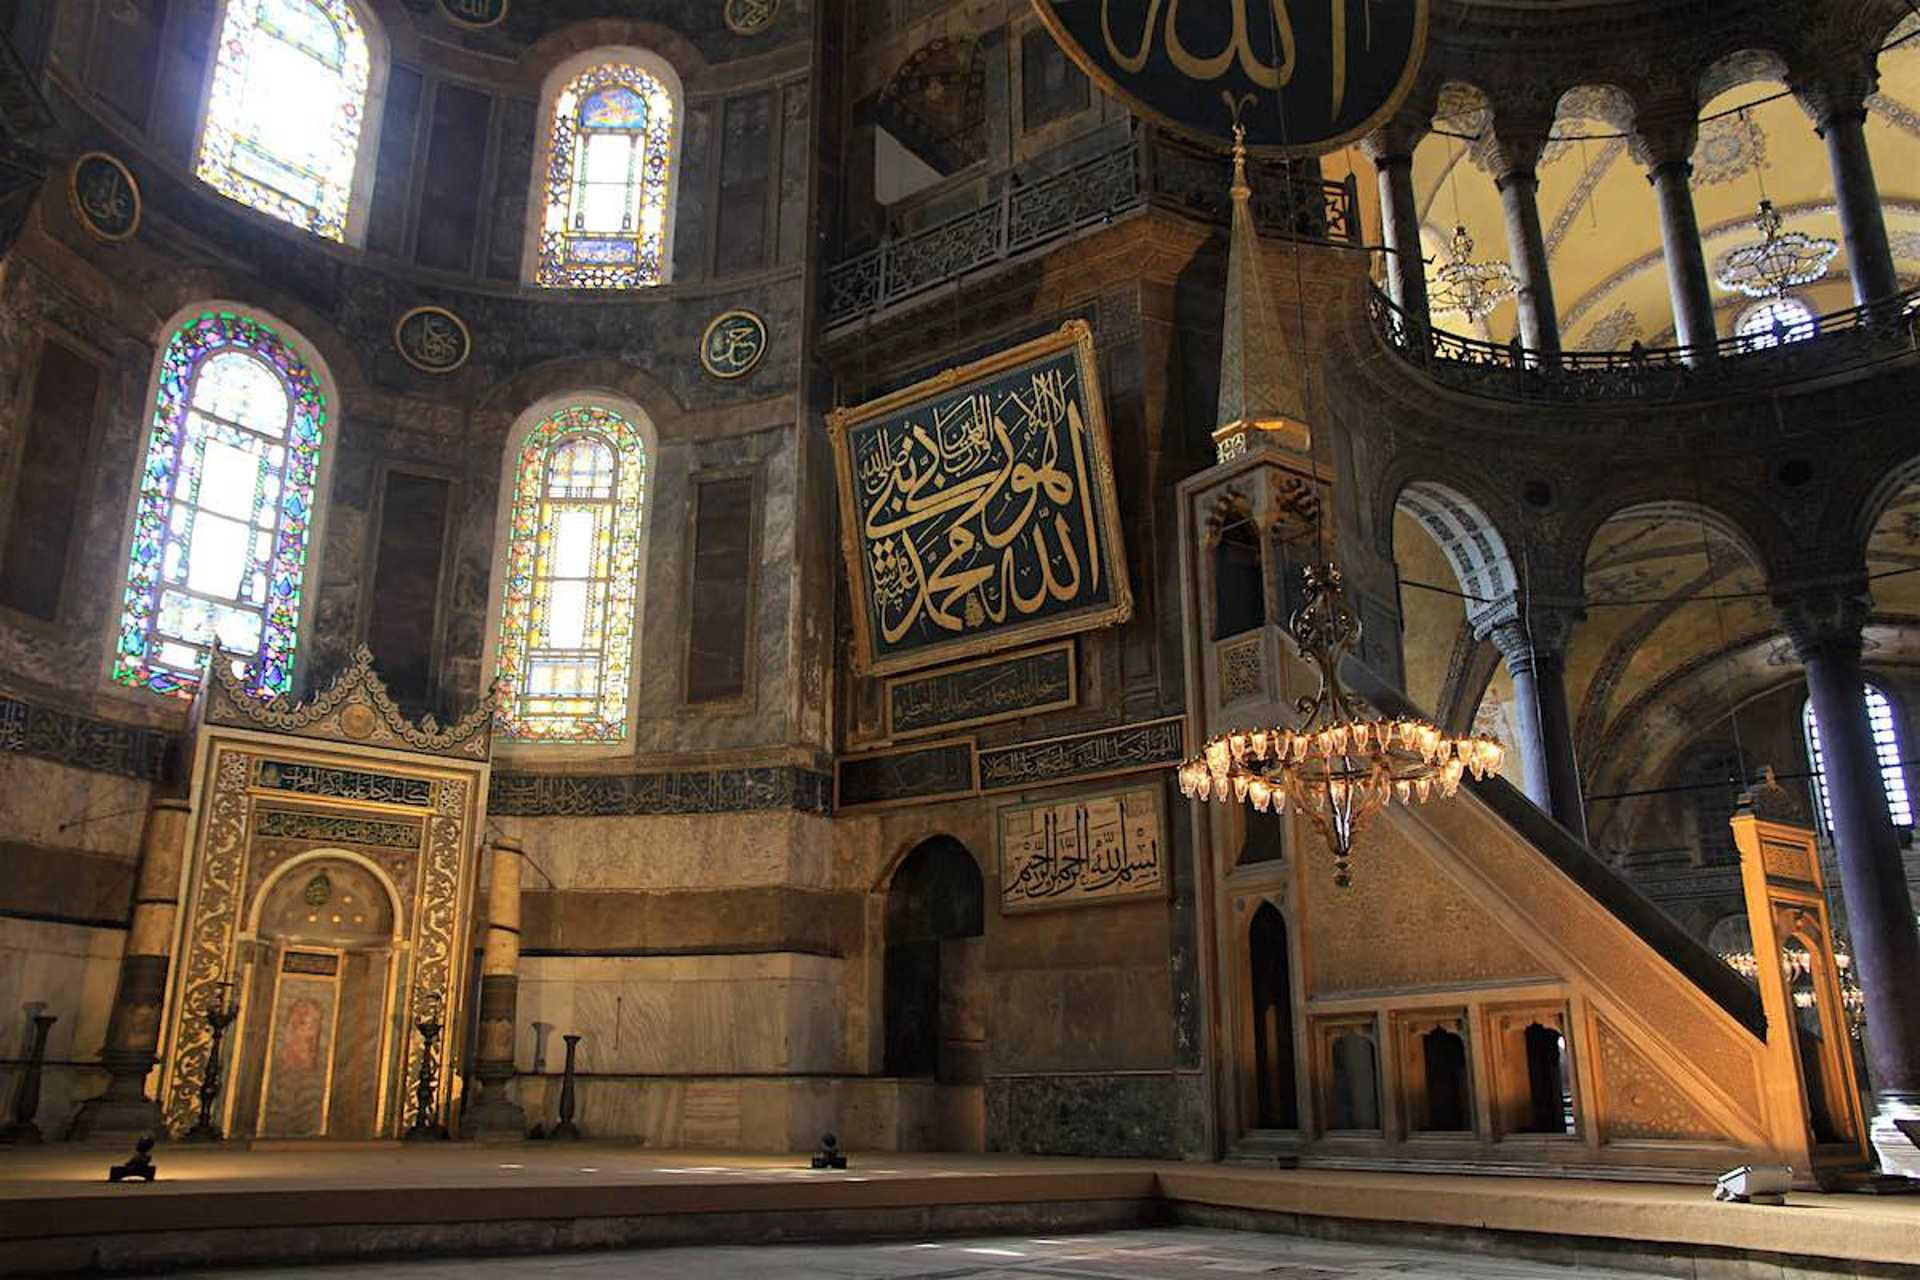 Built in the period of Sultan Murad III, the pulpit in the mosque where the imam delivered his Friday sermons is one of the best examples of marble workmanship from the 16th century Ottoman era.